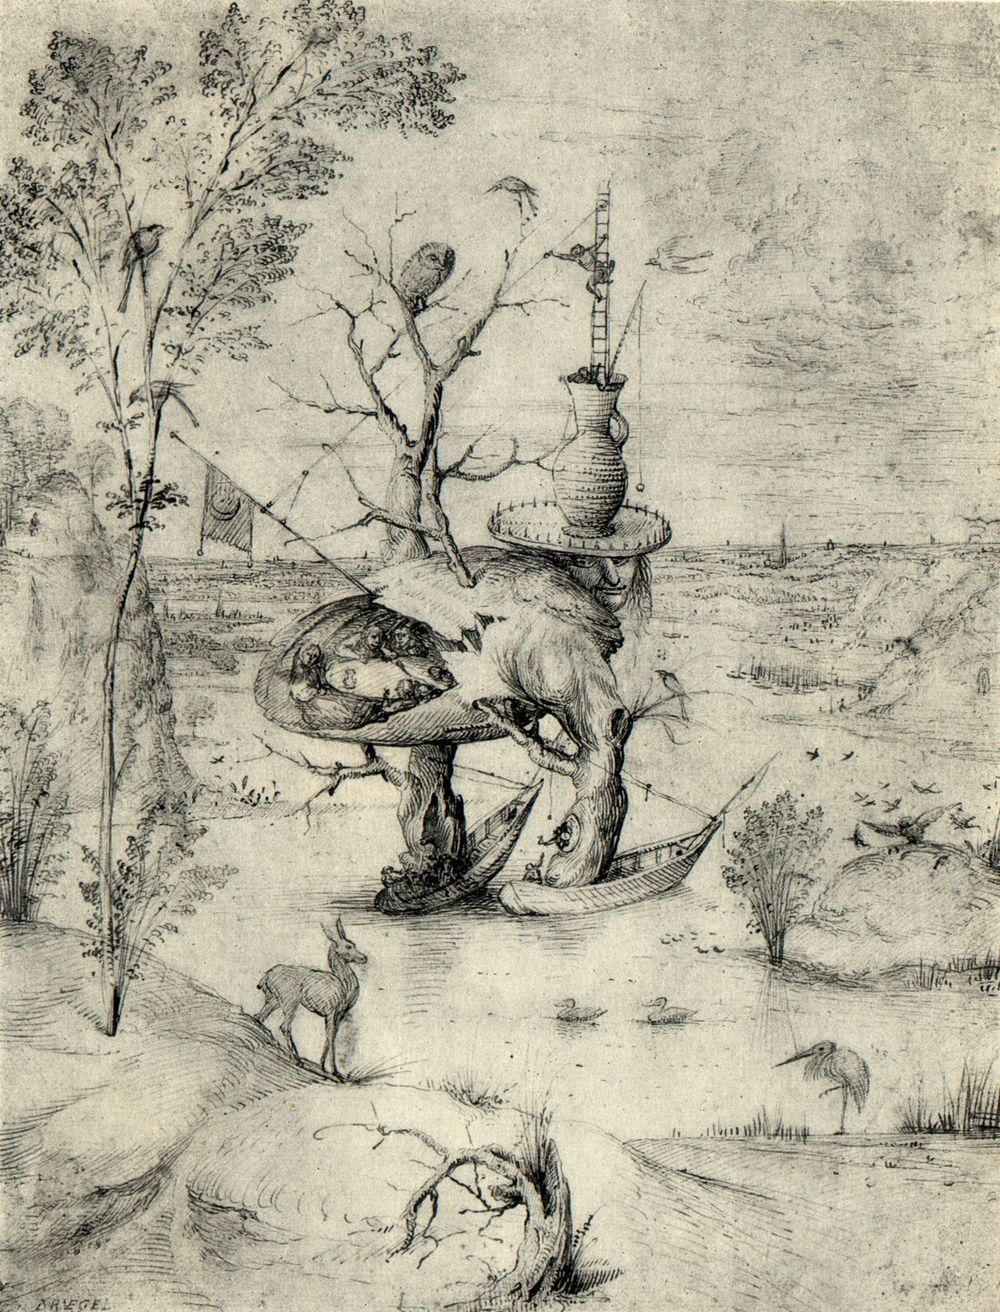 Bosch, The Man-Tree (1470)